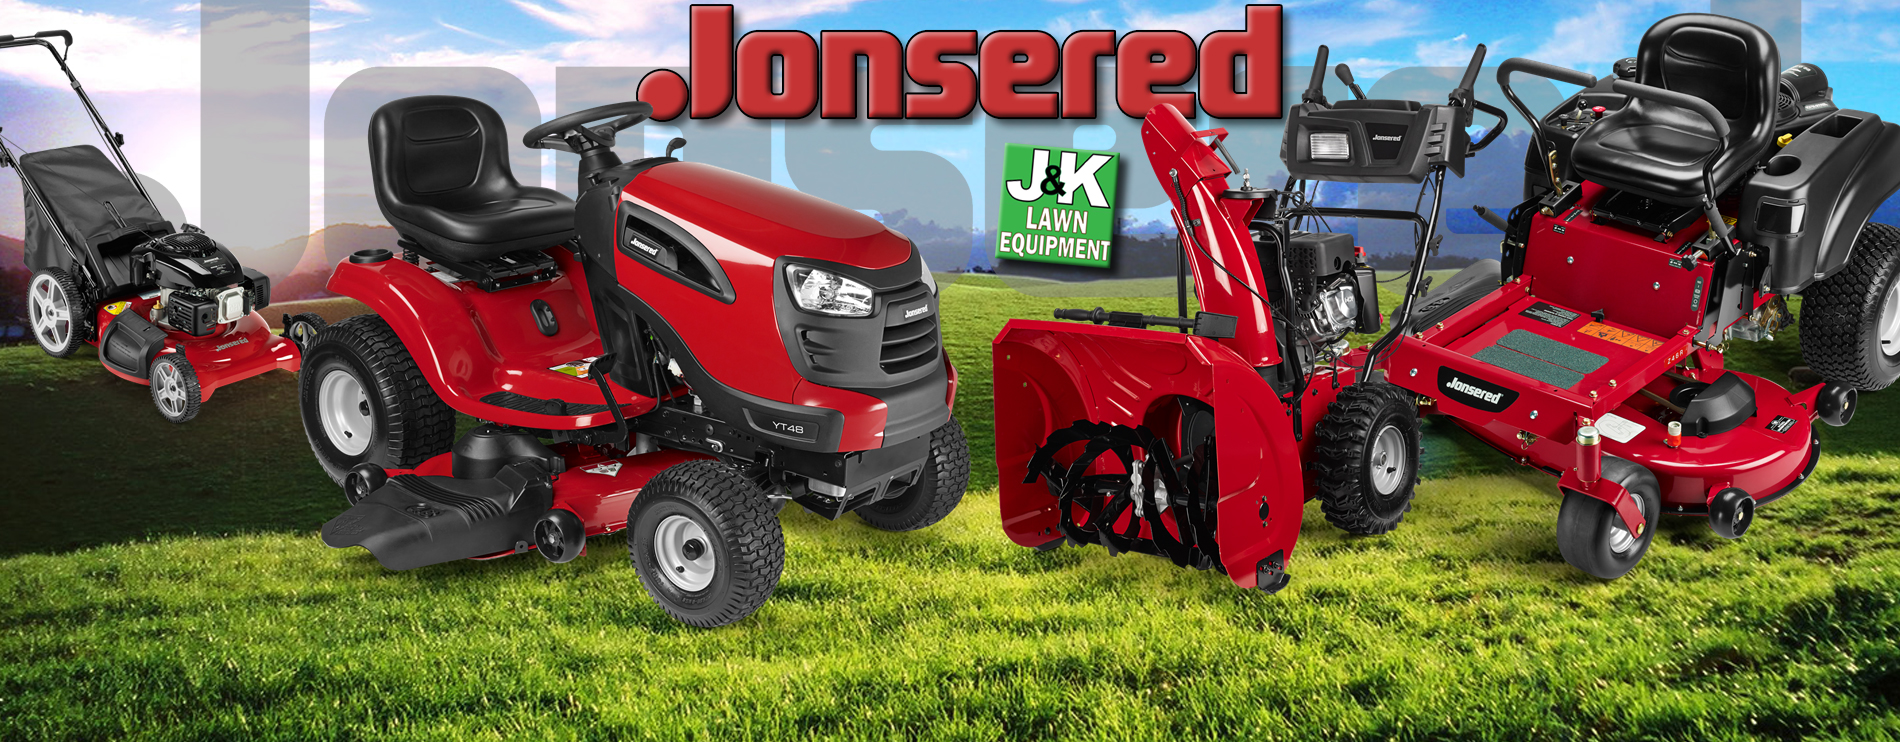 Jk lawn equipment country clipper mowers maruyama edgers lawn jonsered lawn equipment j and k lawn equipment publicscrutiny Choice Image